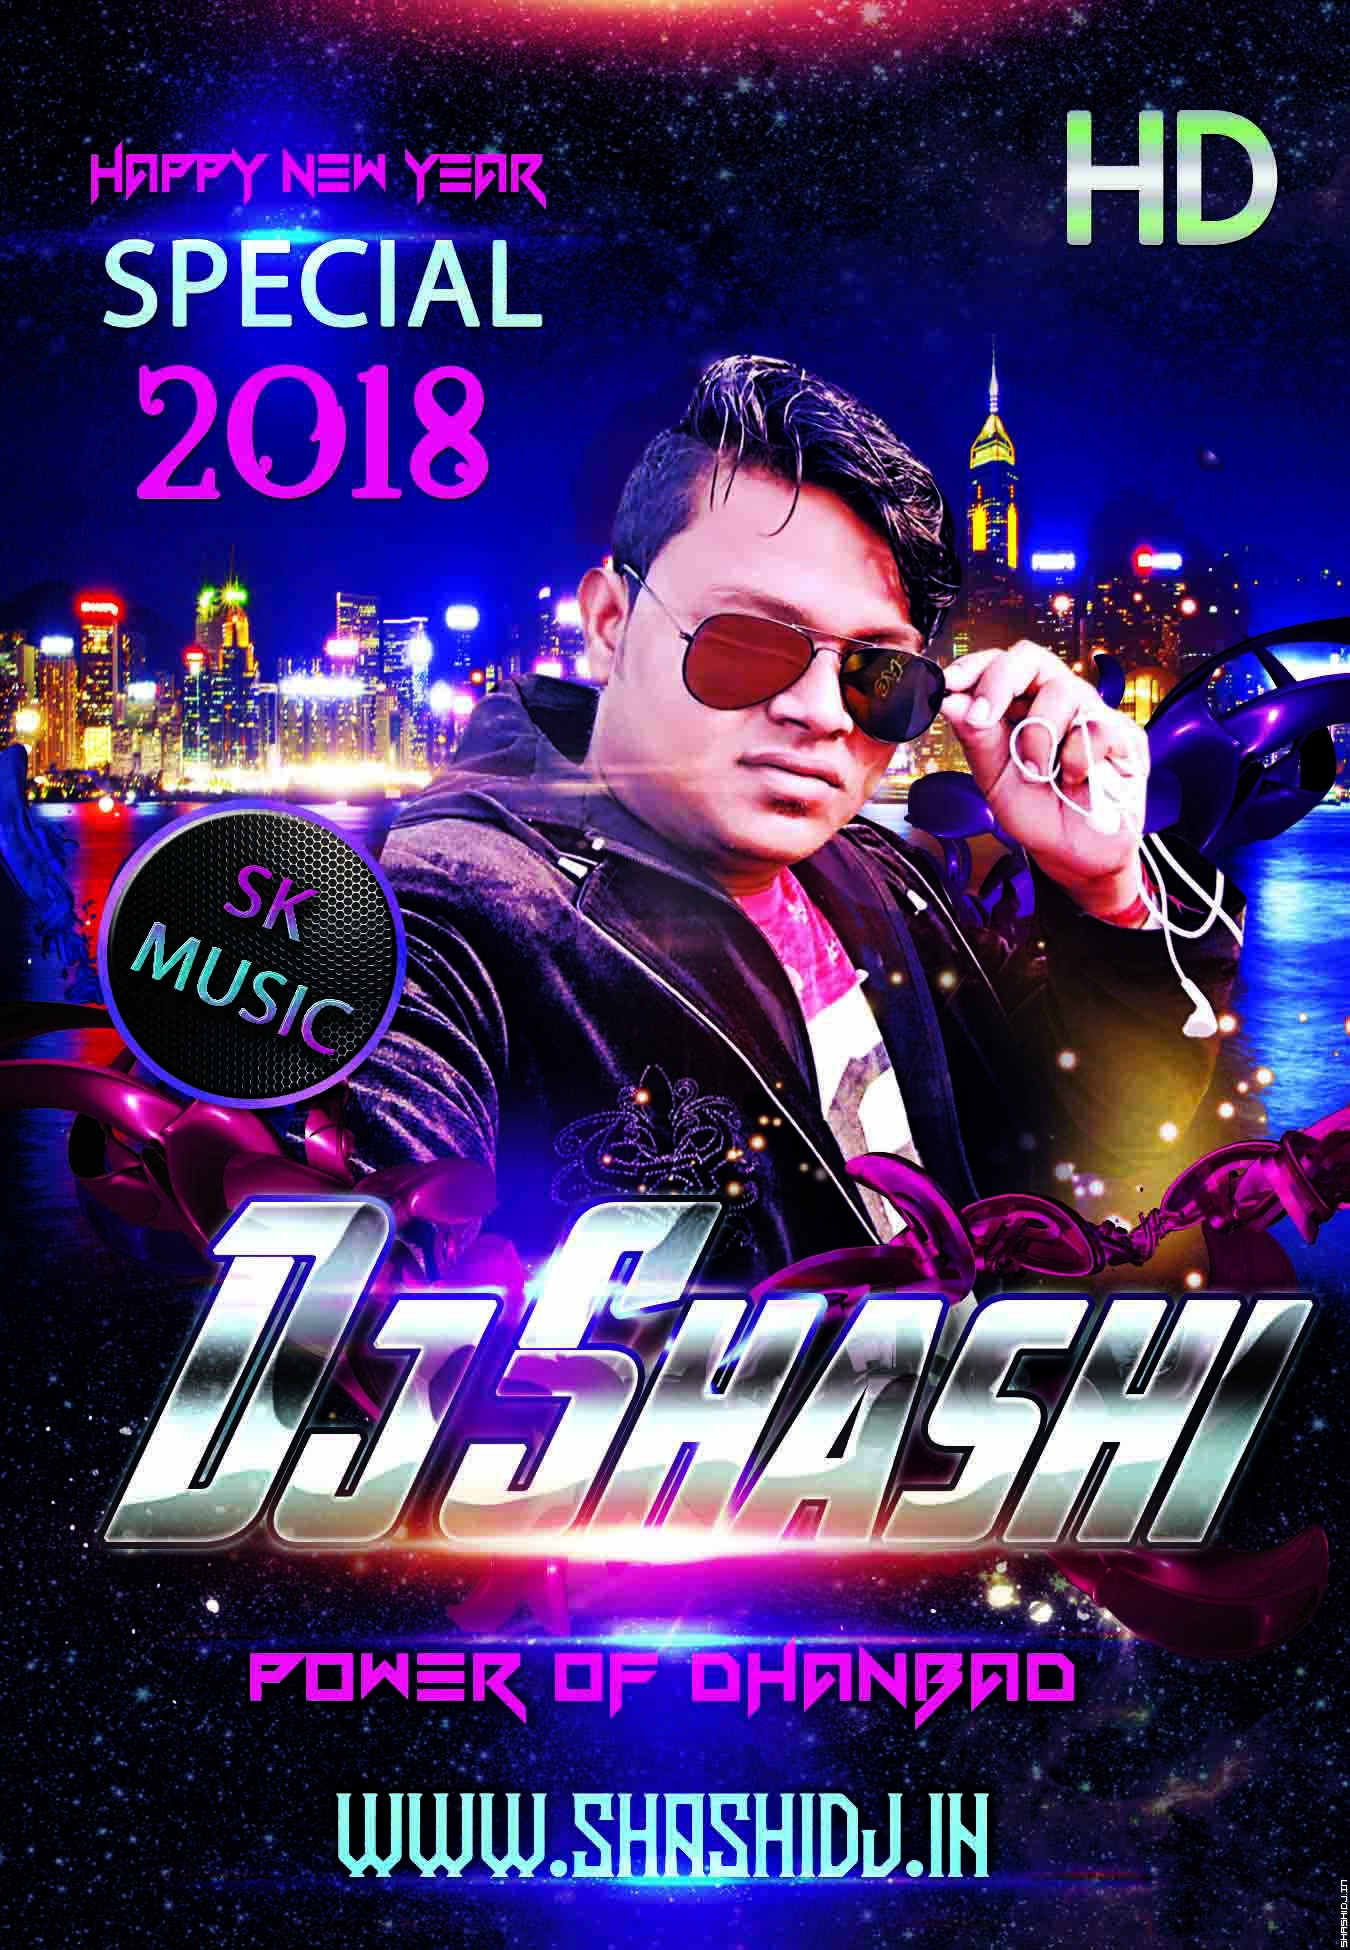 O Tor State Banker ATM Card Hyper Bangla Jhumar Mix Dj Shashi.mp3